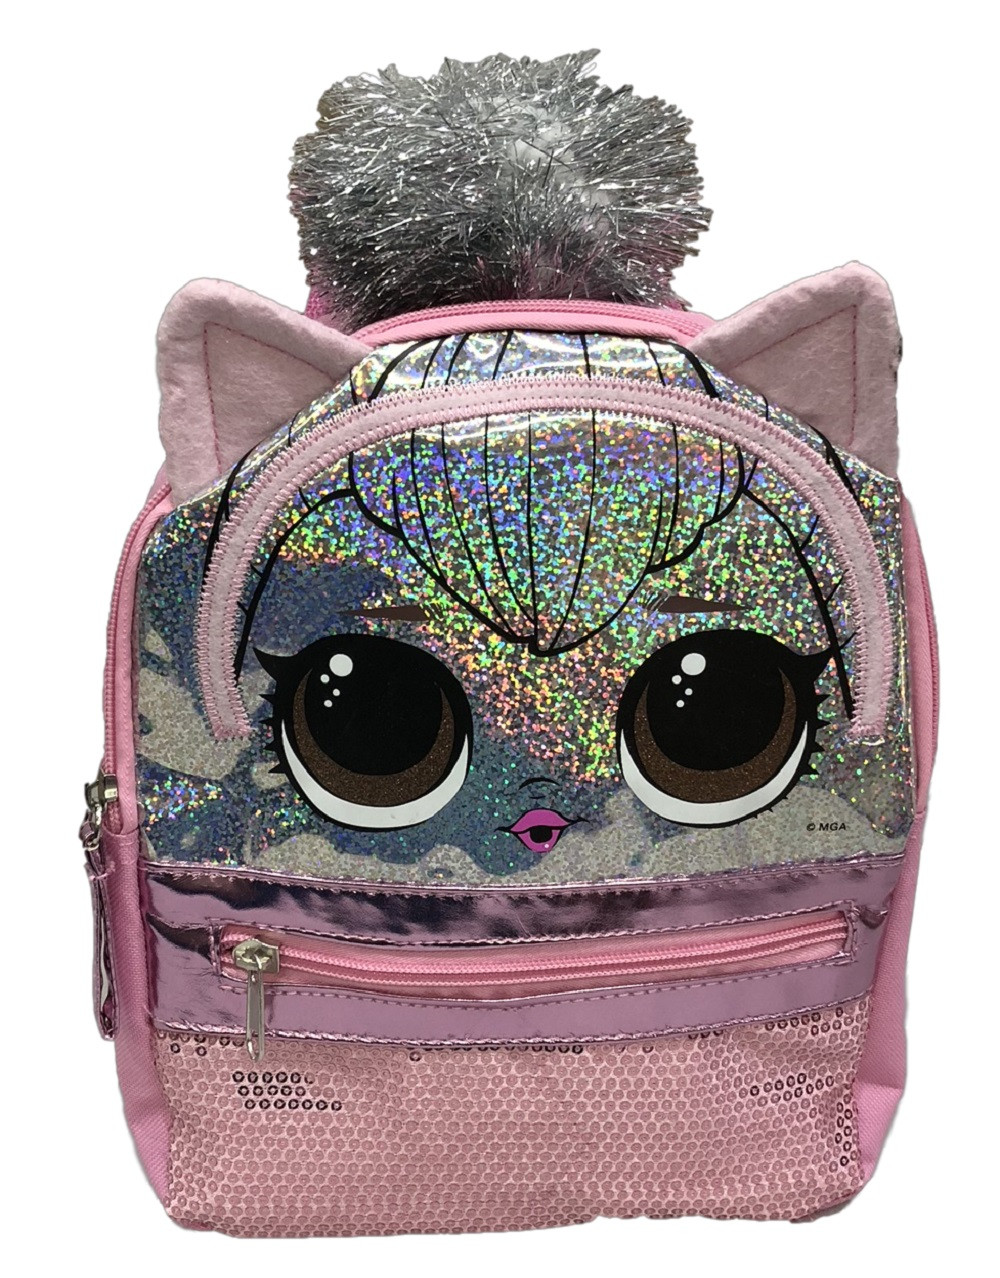 LOL Surprise Backpack - Mini 10 Inch - Kitty Queen